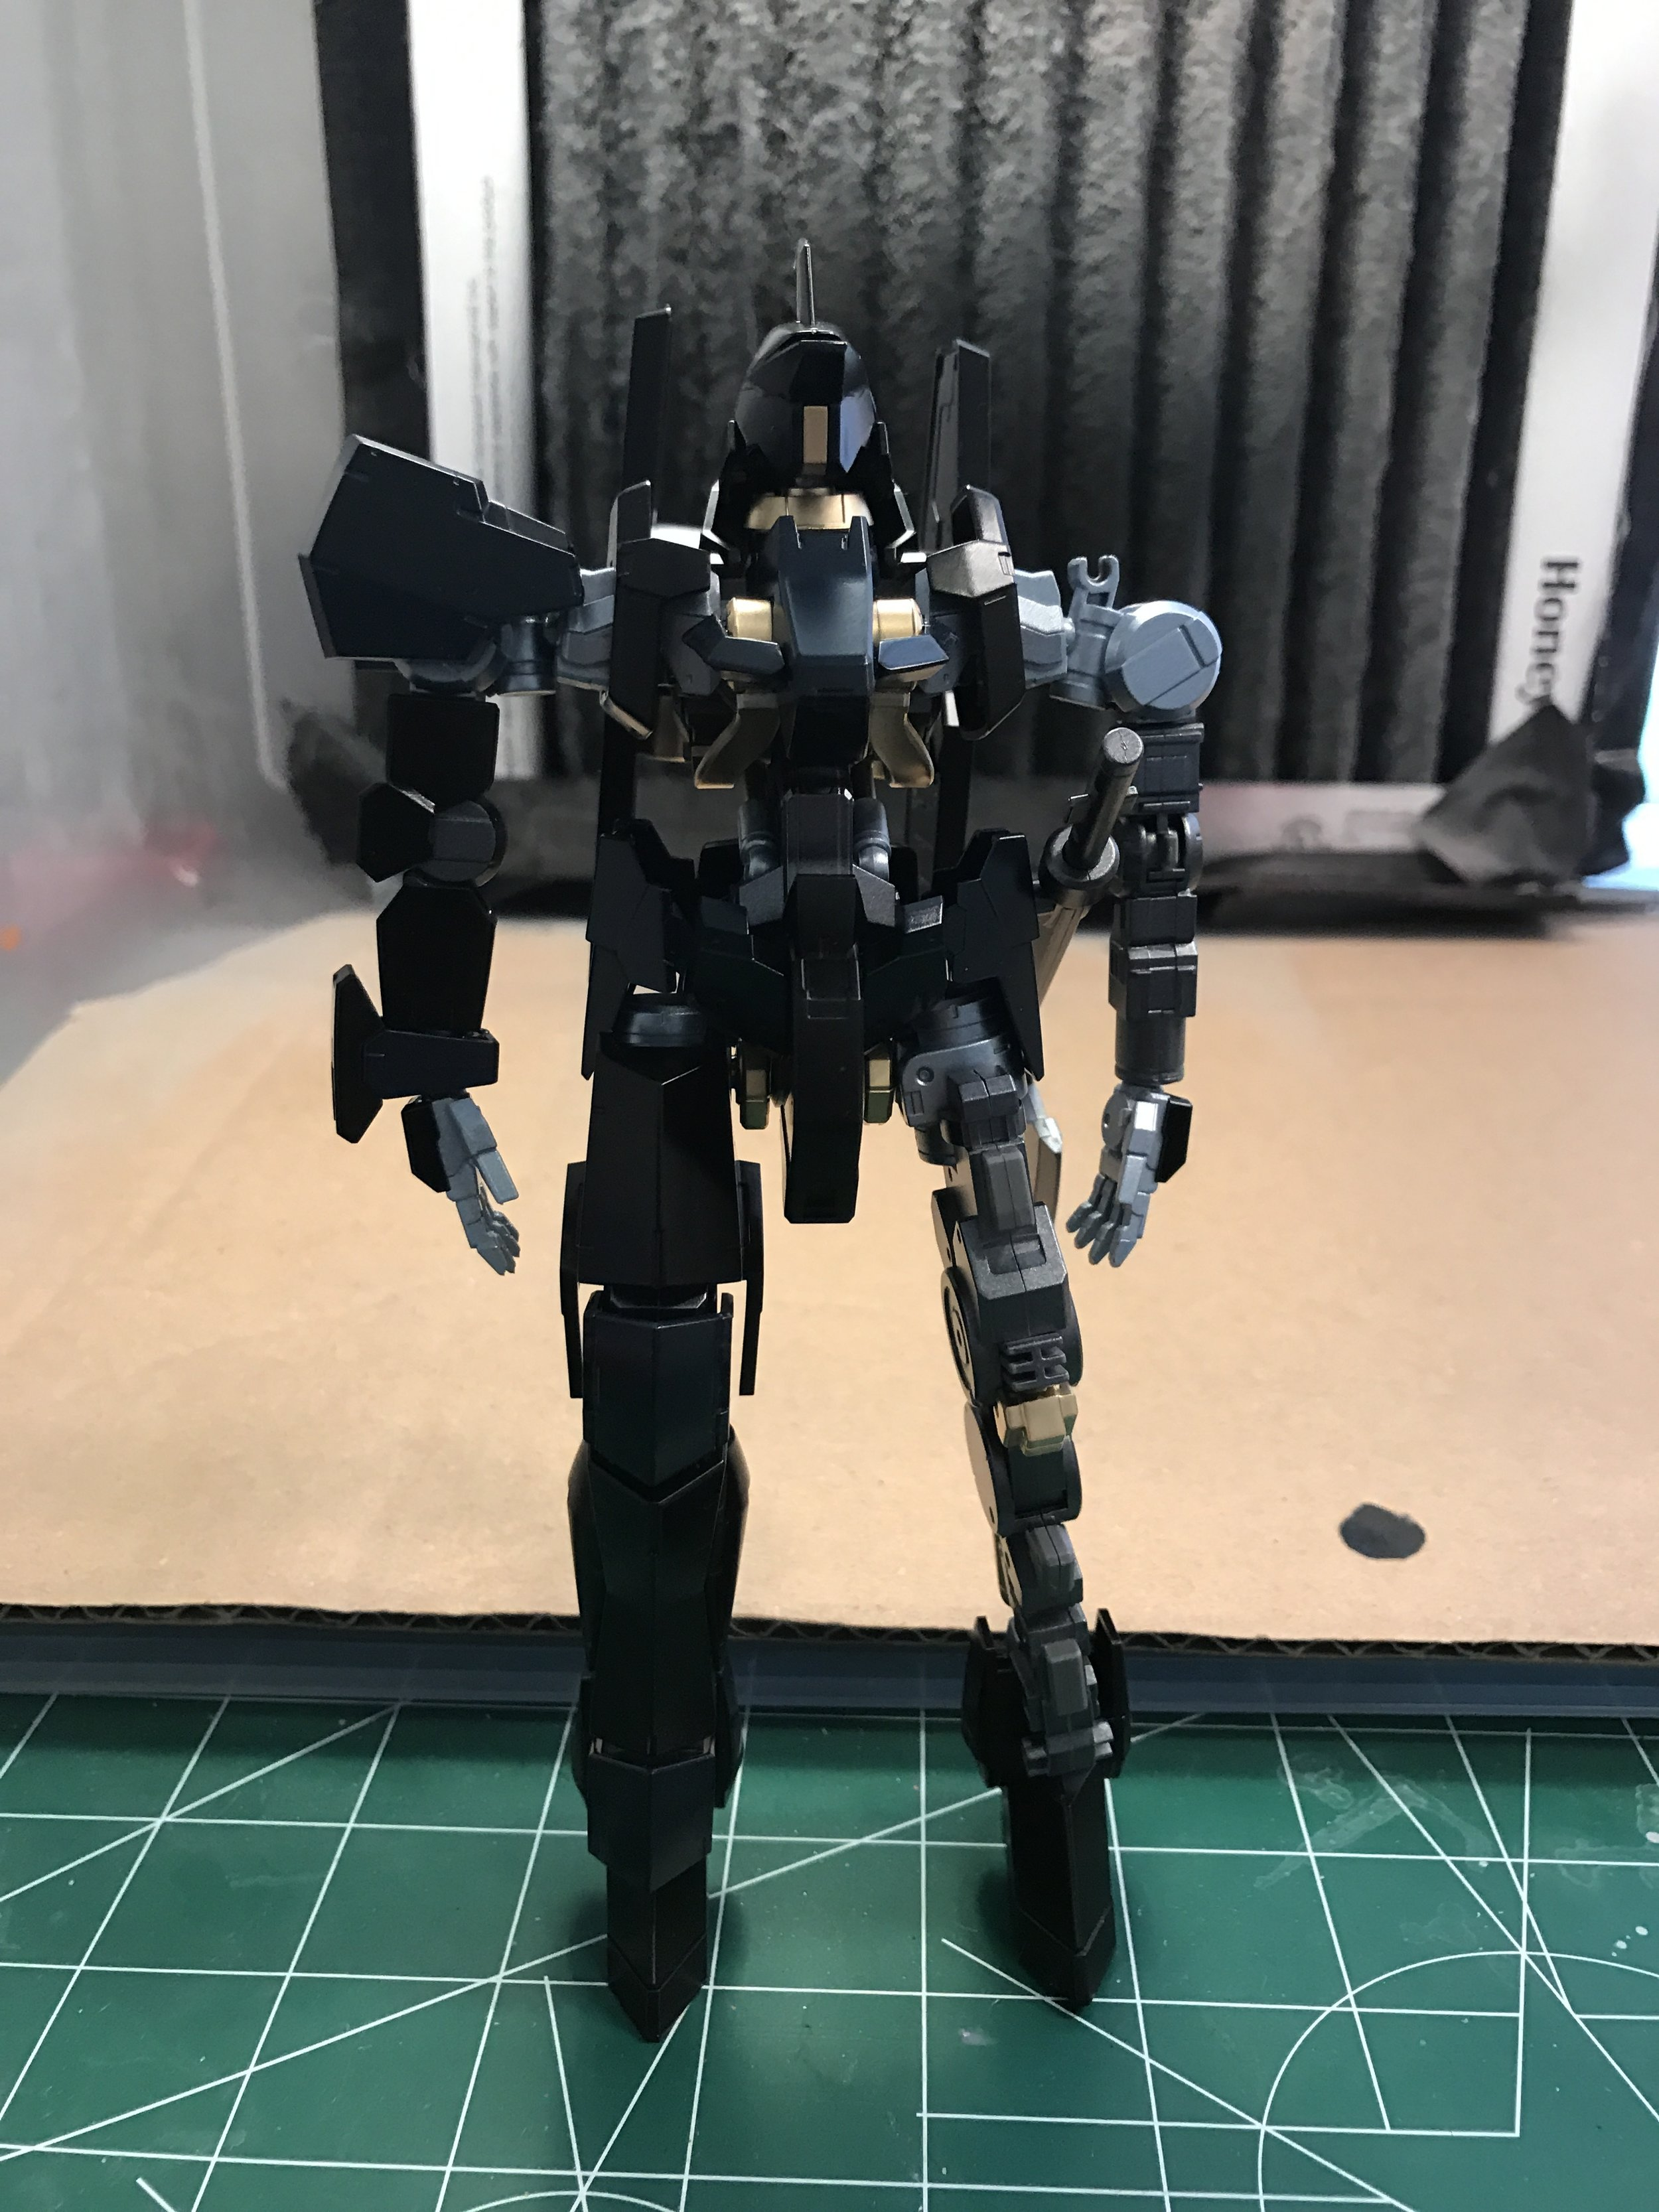 Armor is on the right side only; for test fitting and to see the color scheme.